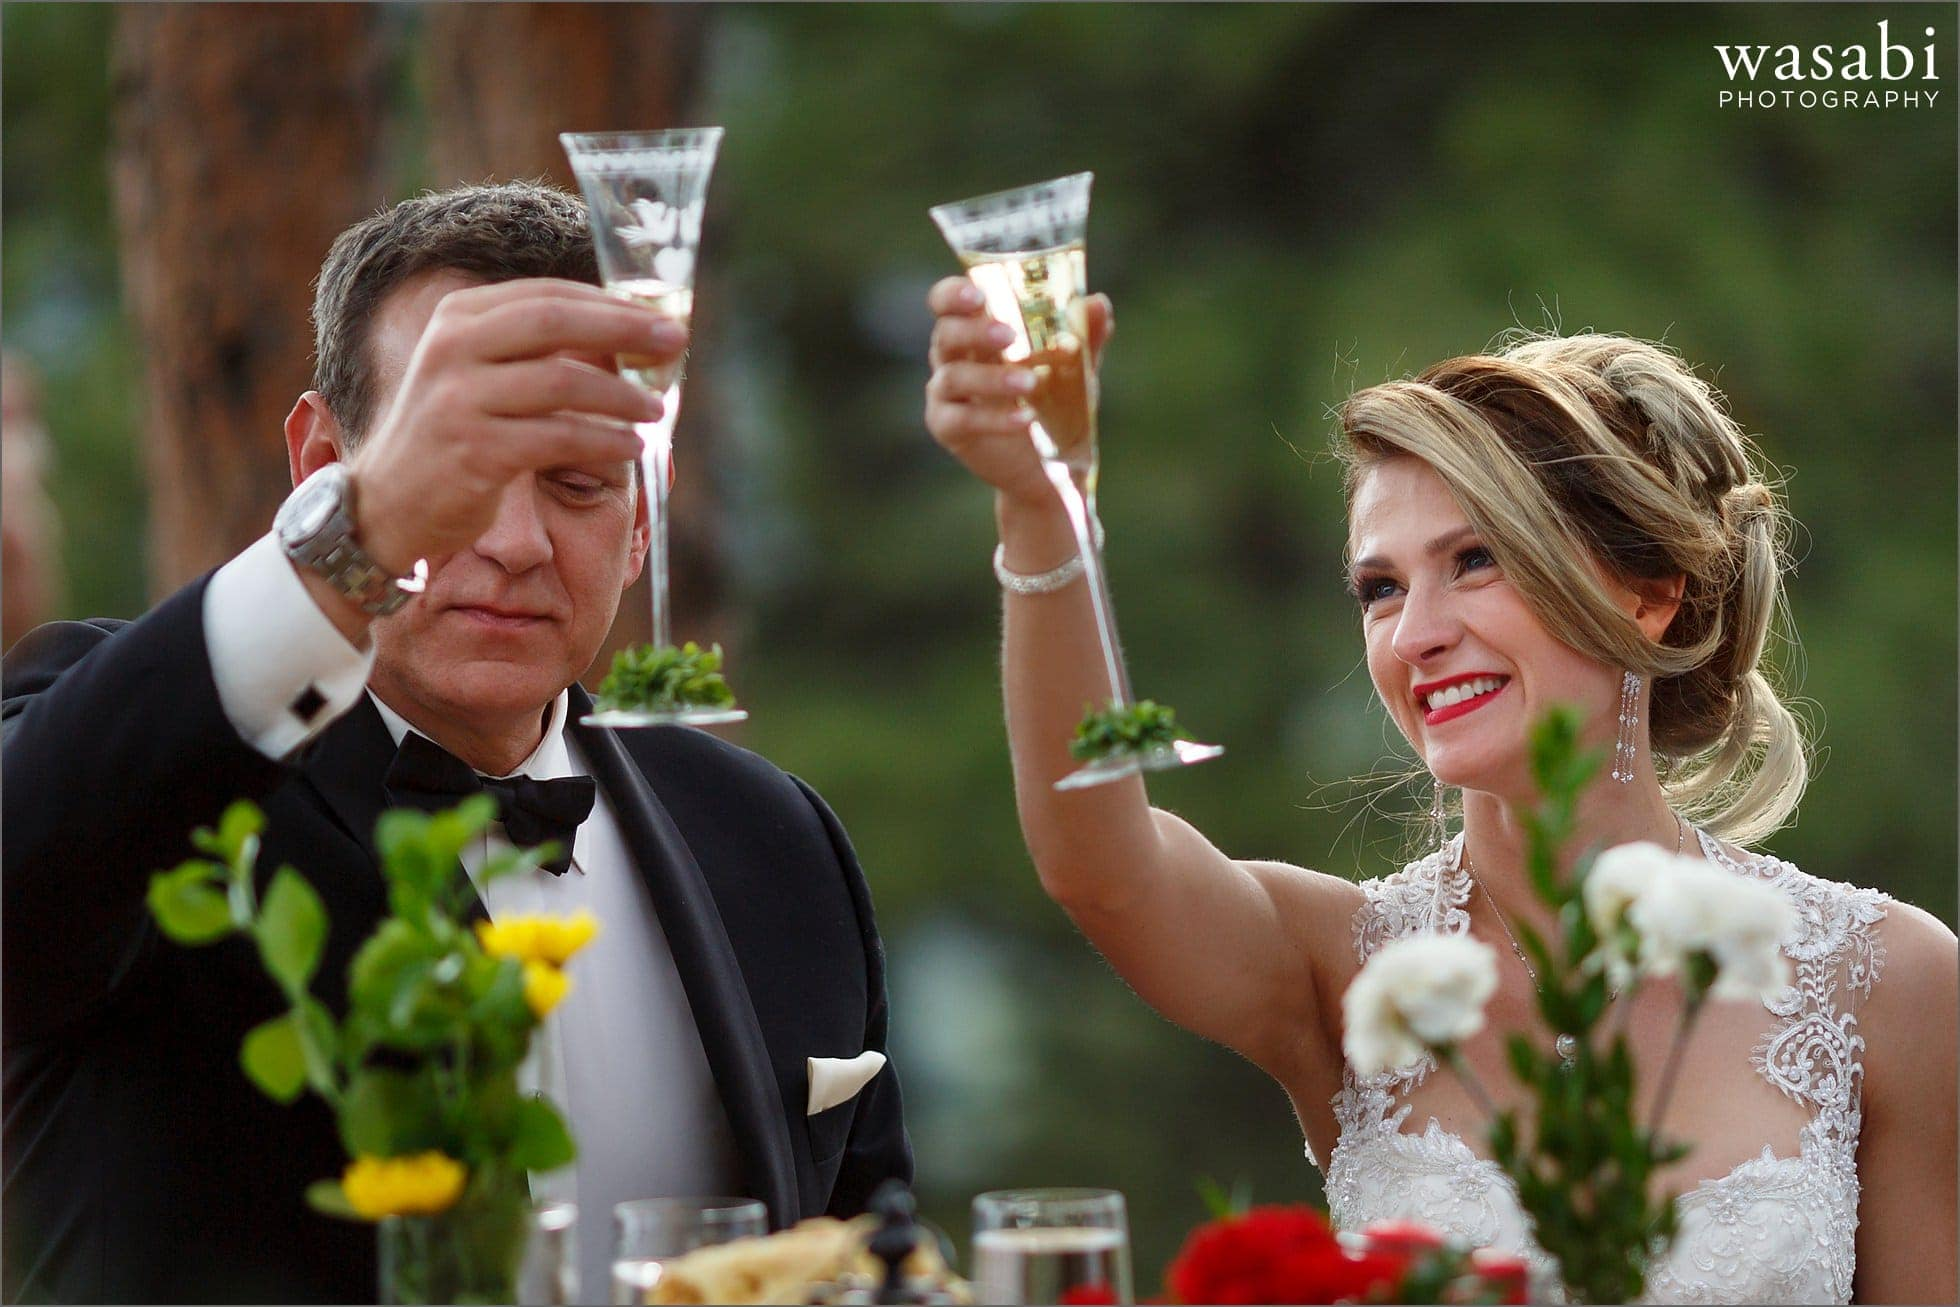 wedding couple raises their glasses during a toast at their home wedding reception on lookout mountain in Golden Colorado